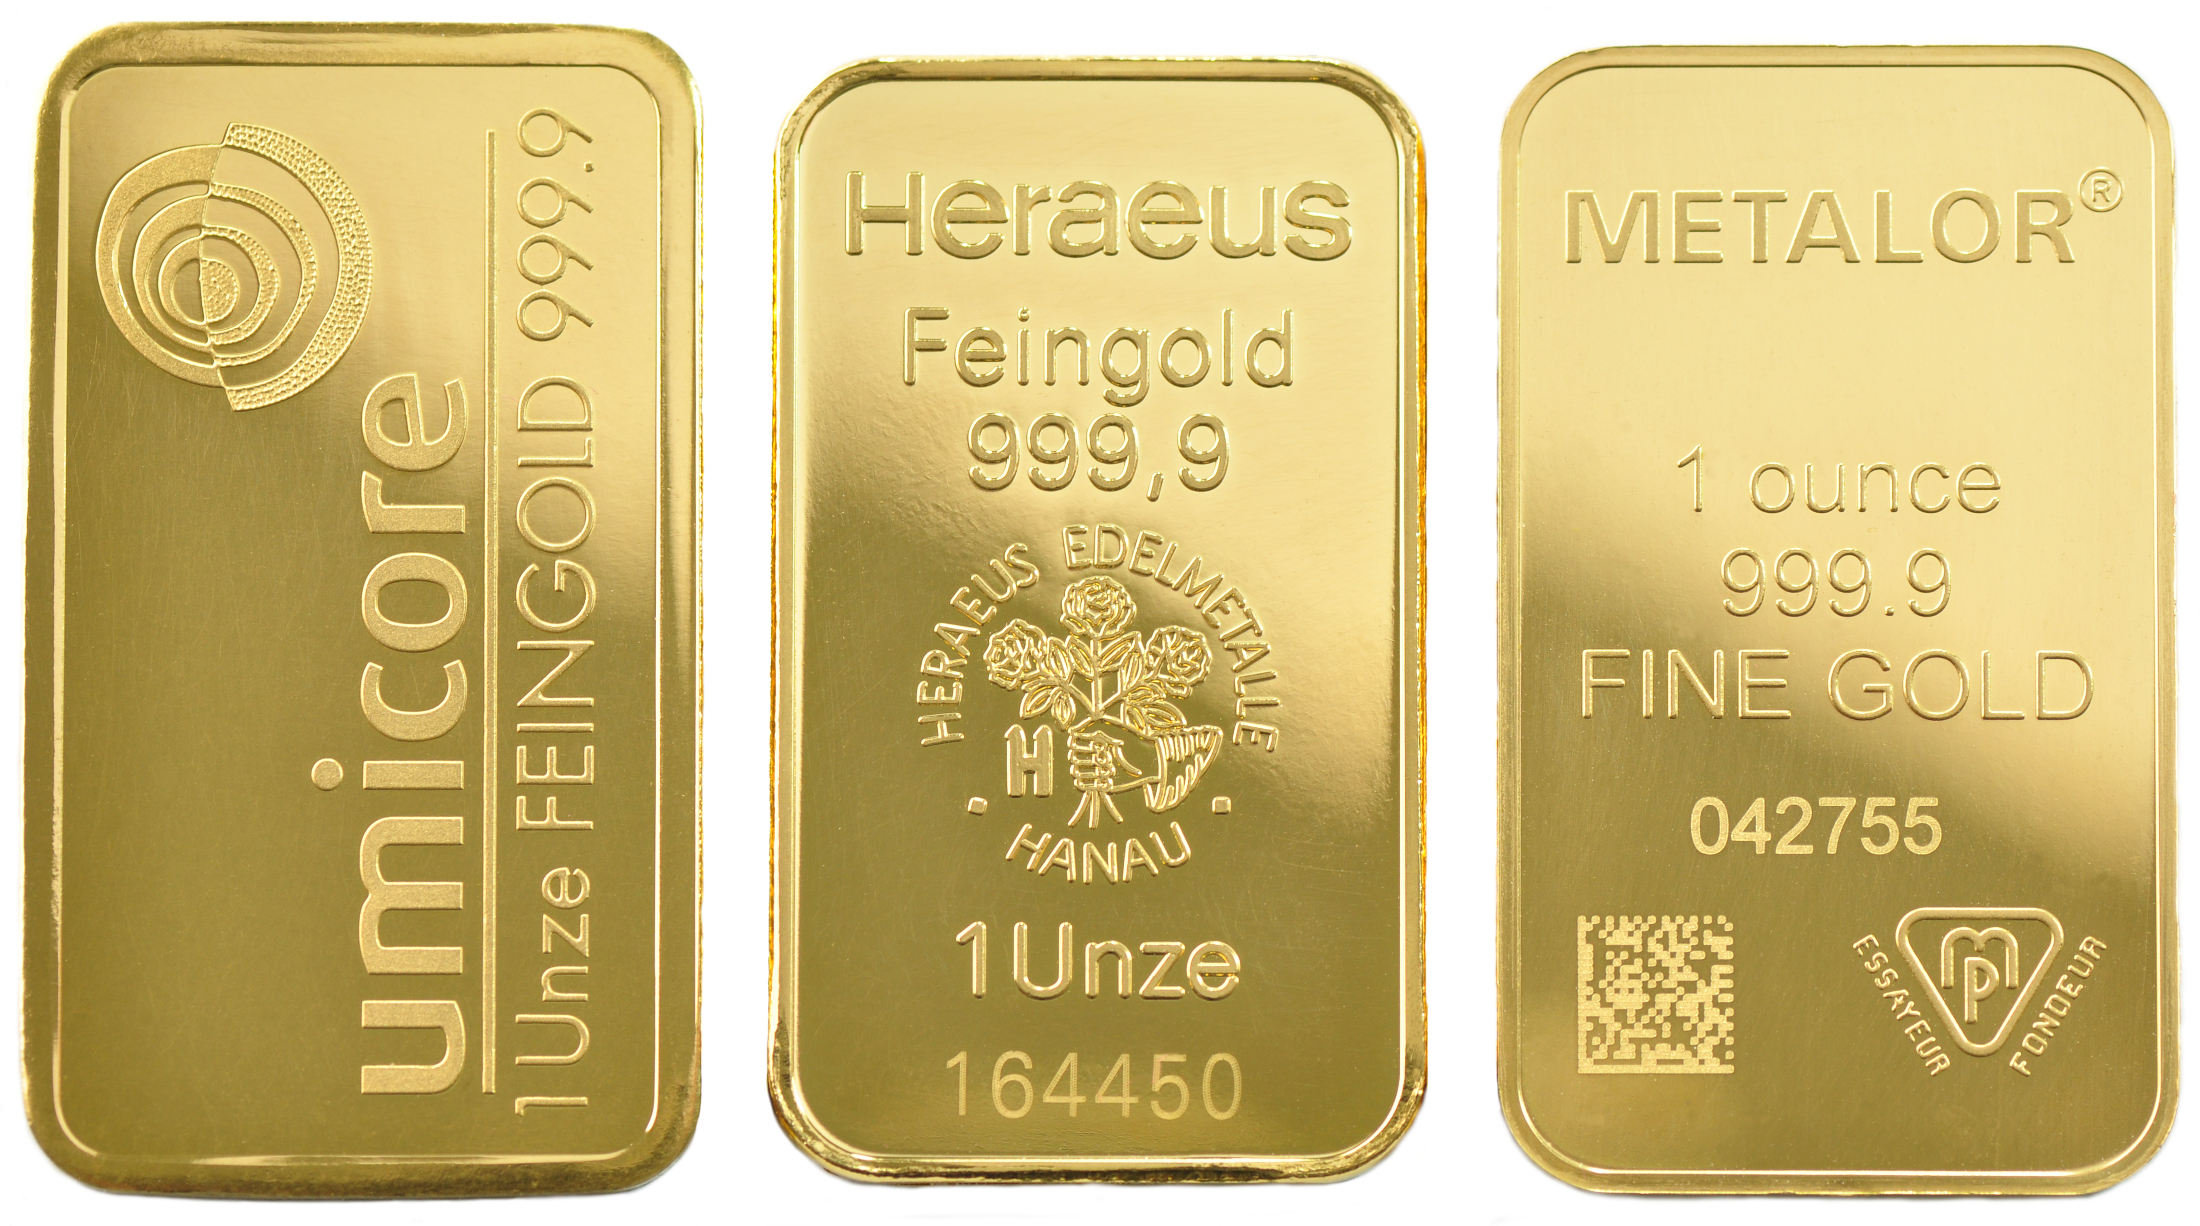 1 Ounce Gold Bars